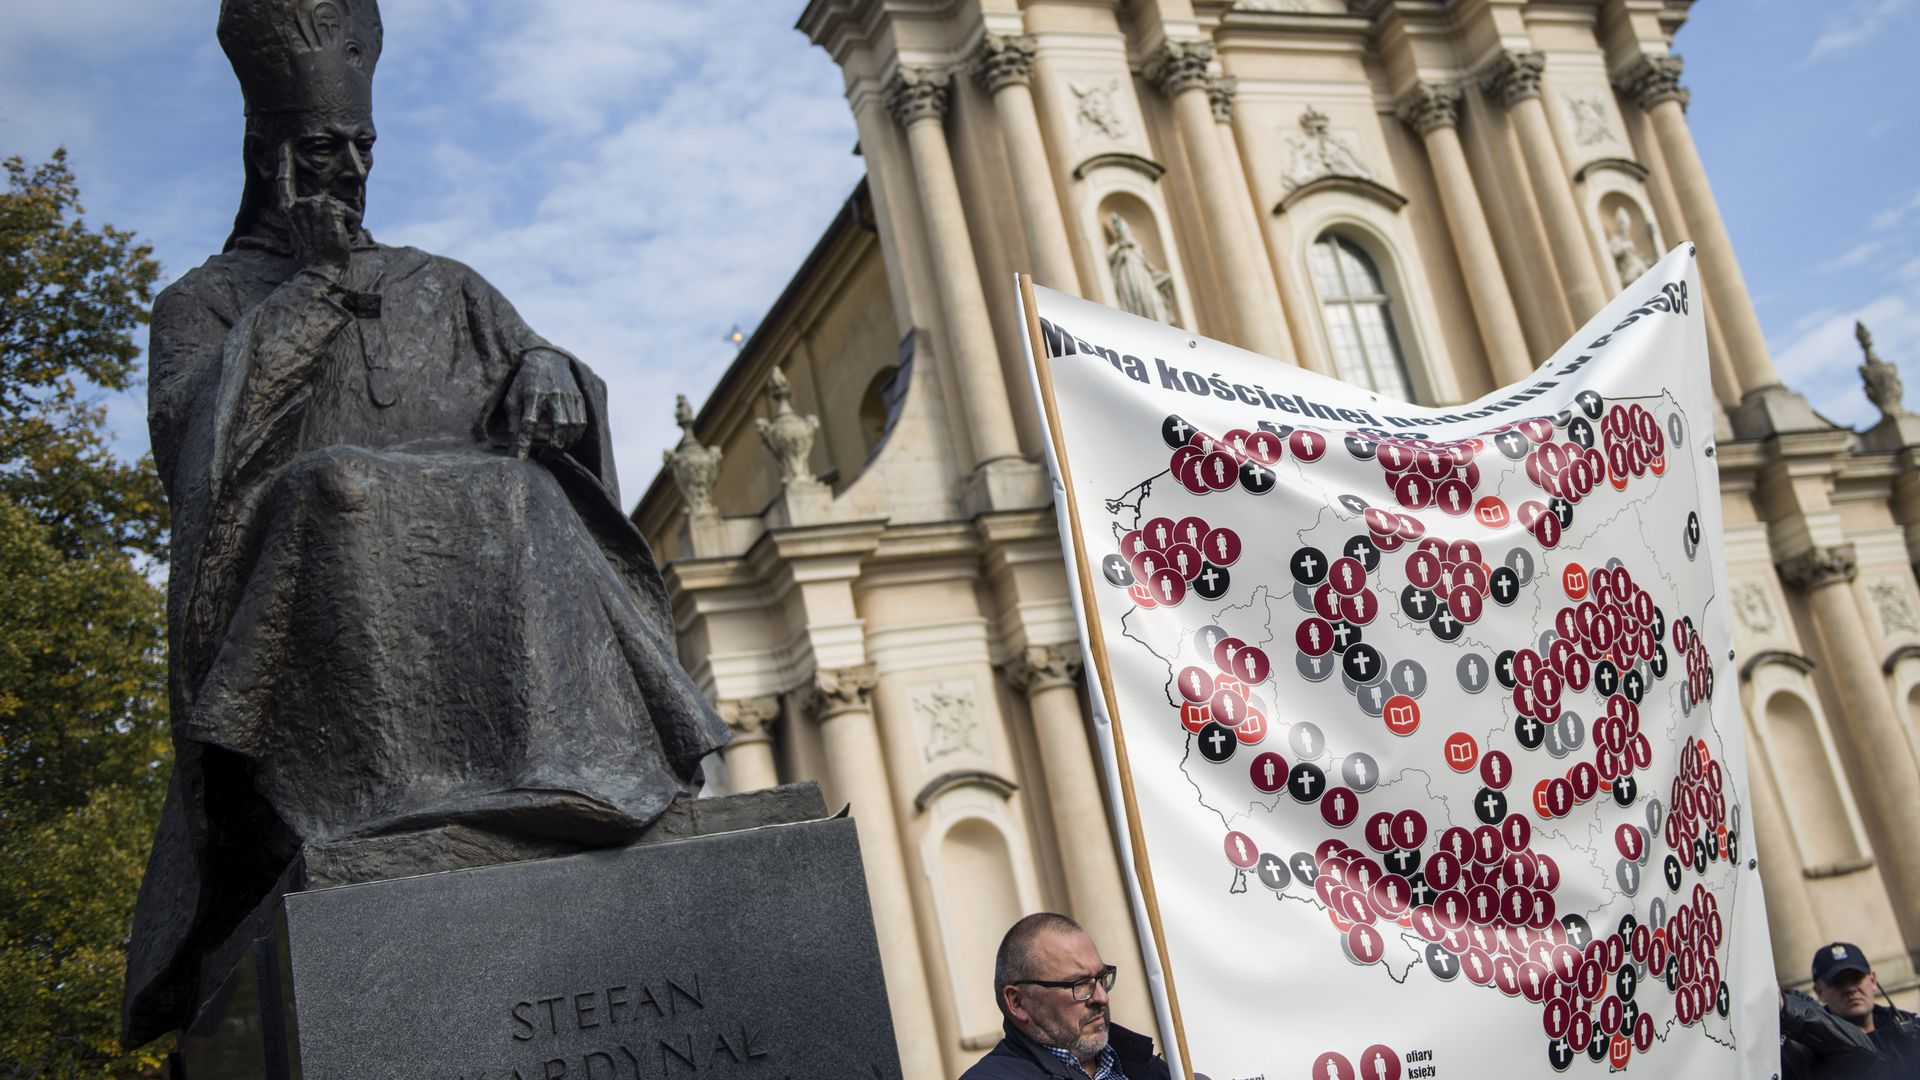 A demonstration outside a Catholic Church in Warsaw, Poland against catholic priests who committed pedophilia.